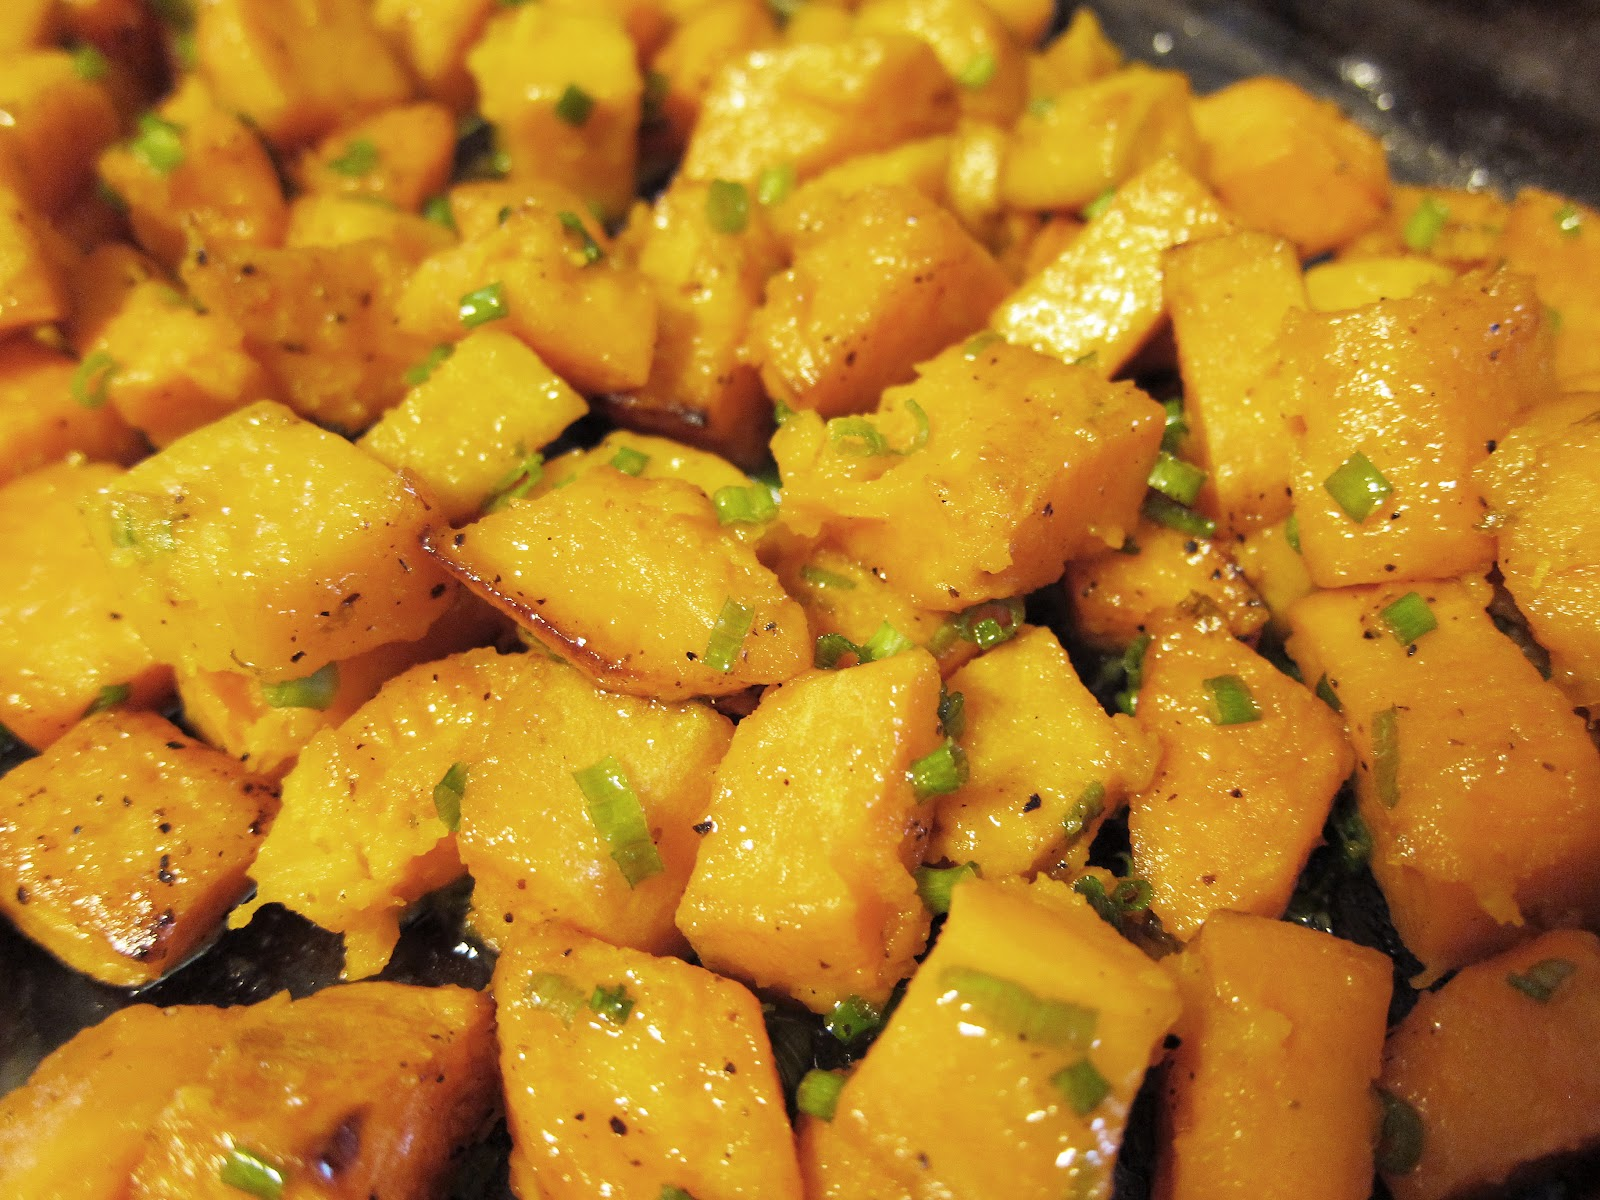 Roasted Sweet Potatoes with Lime Syrup and Chives